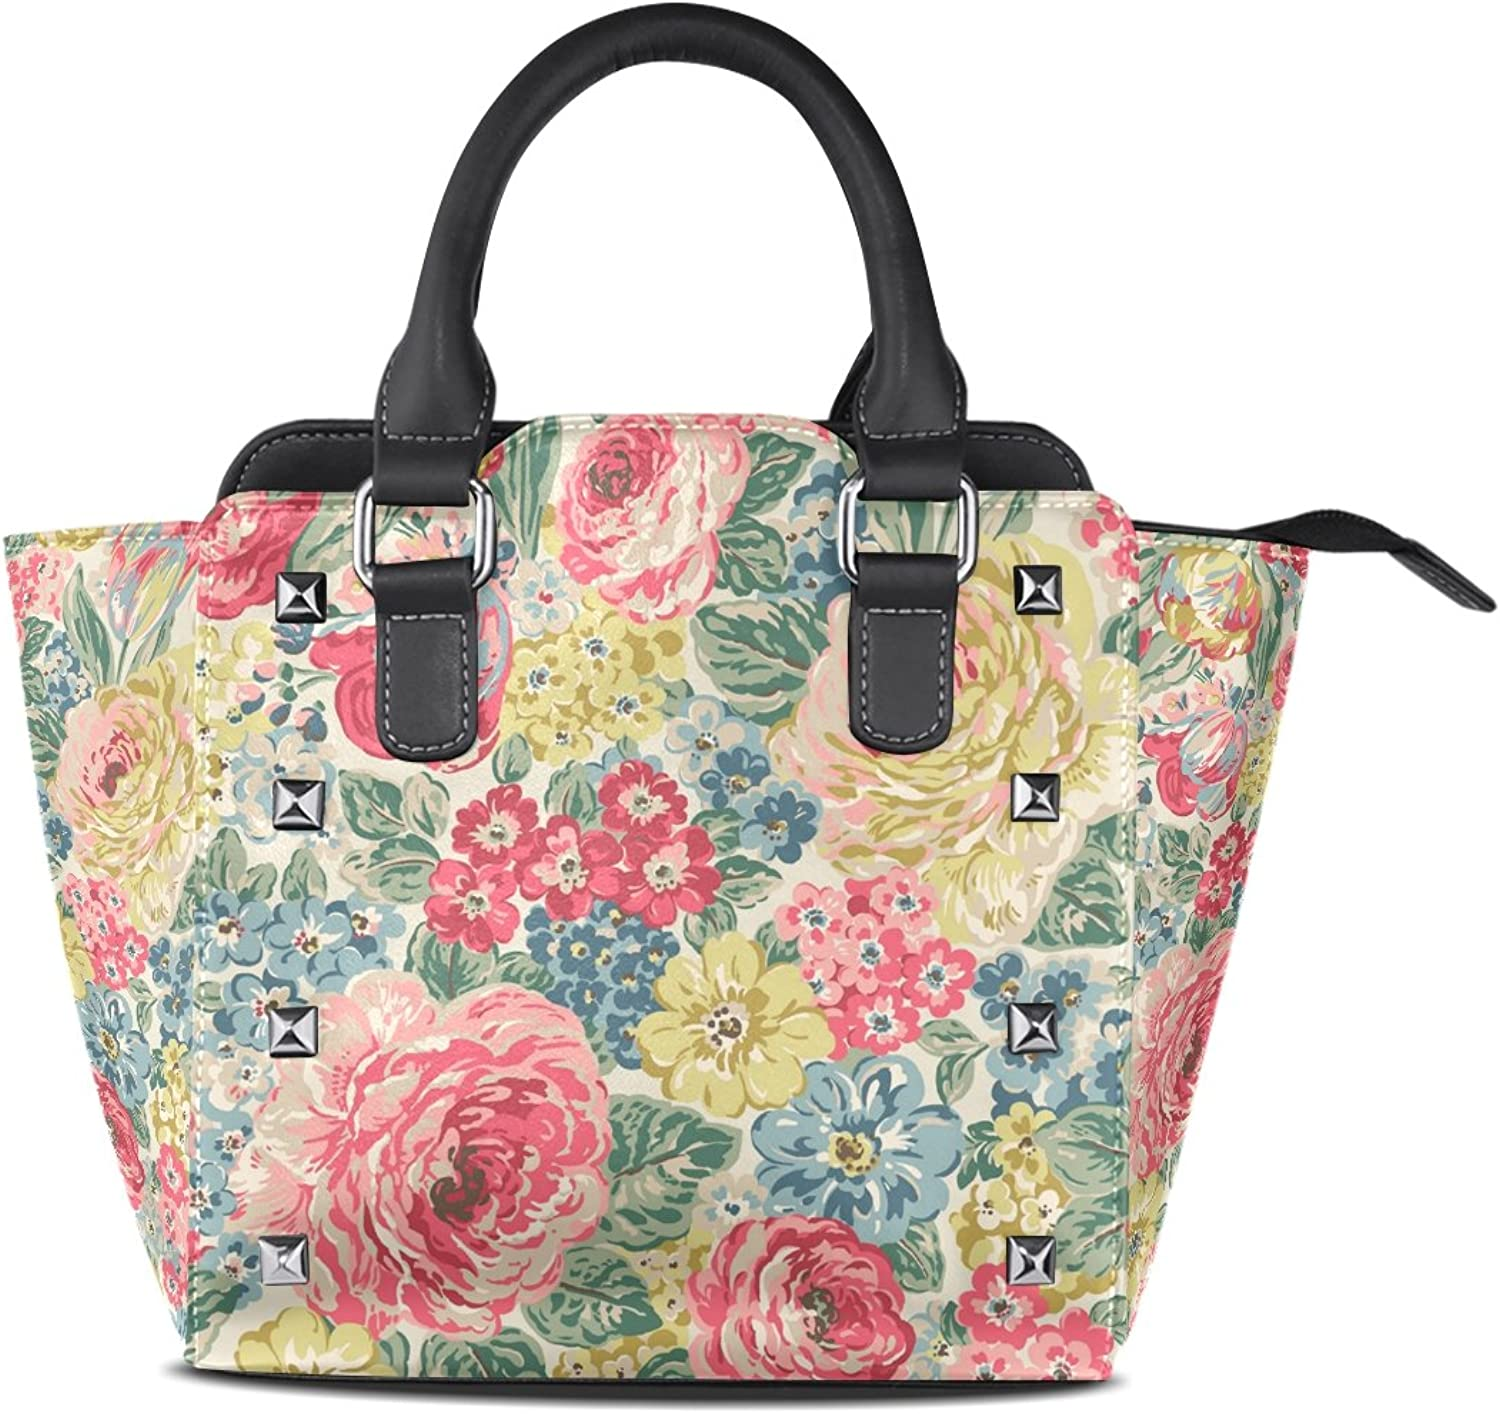 Sunlome Orchard Bloom Floral Print Women's Leather Tote Shoulder Bags Handbags